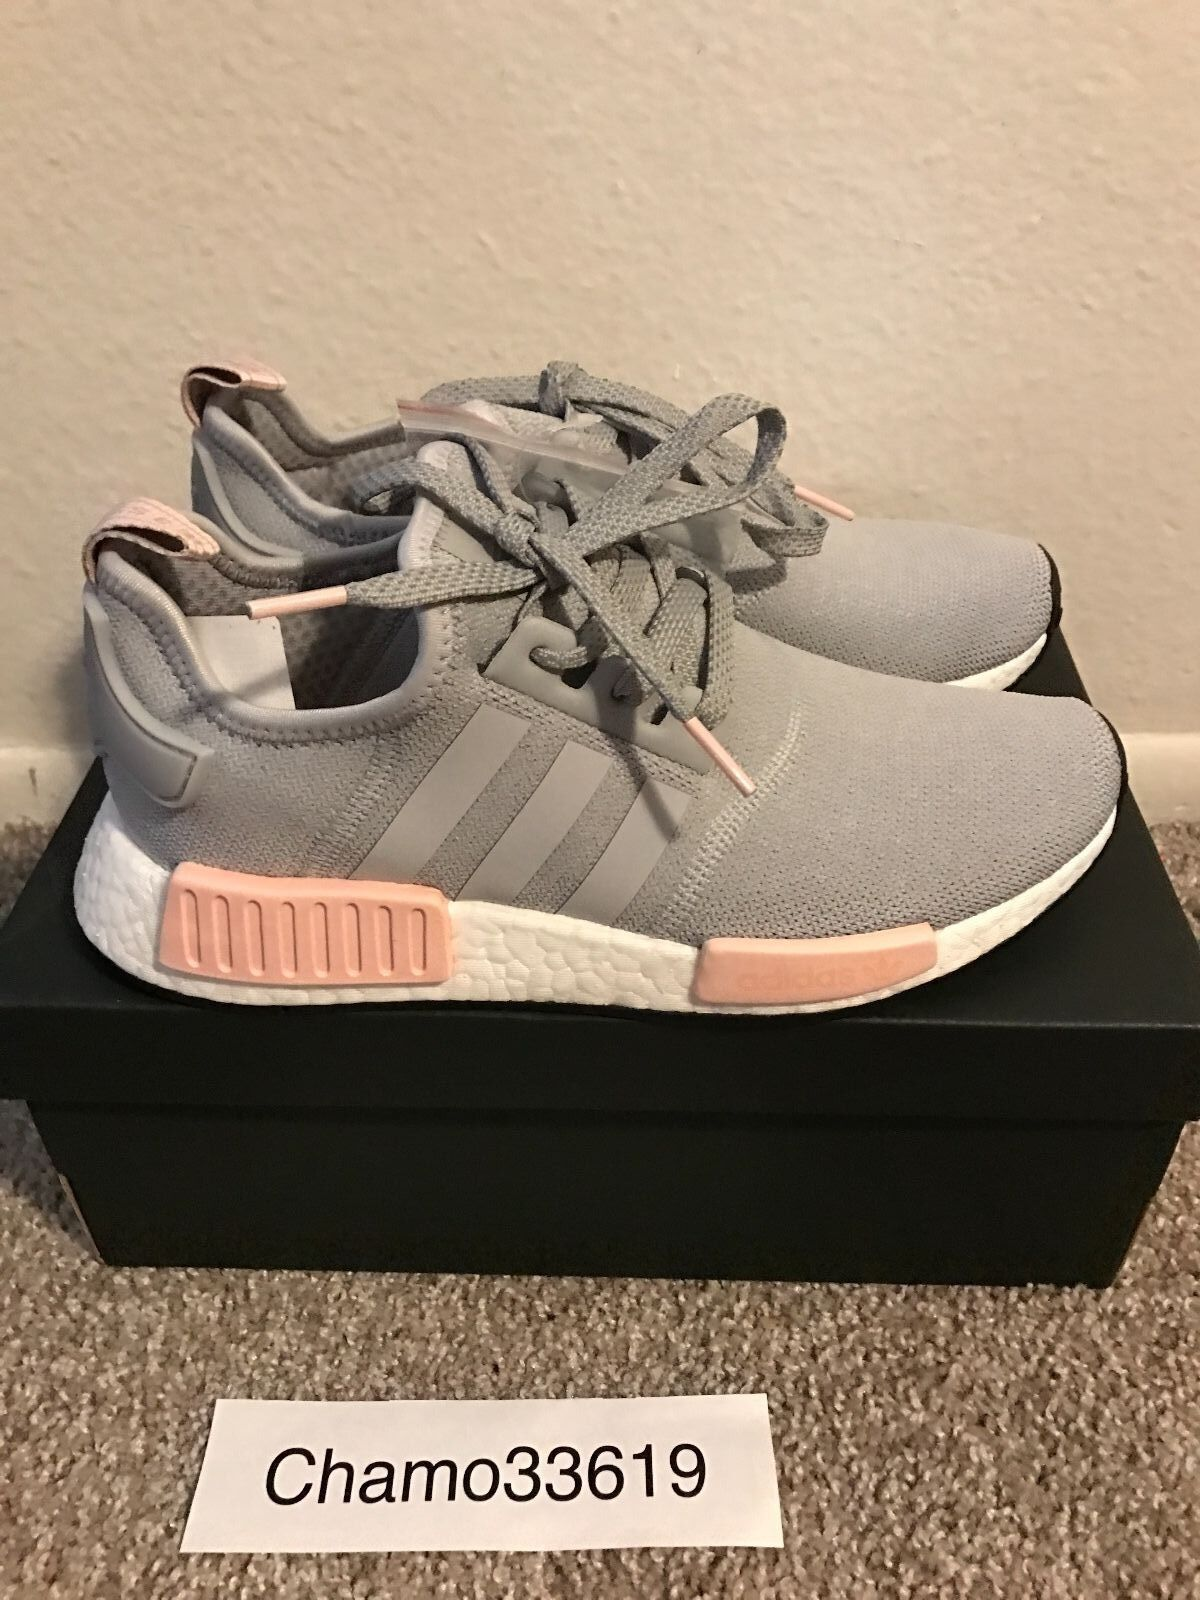 4fb2f6f35847a Adidas NMD R1 Women Clear Onix Vapour Pink - ALL SIZES - with Receipt -  BY3058